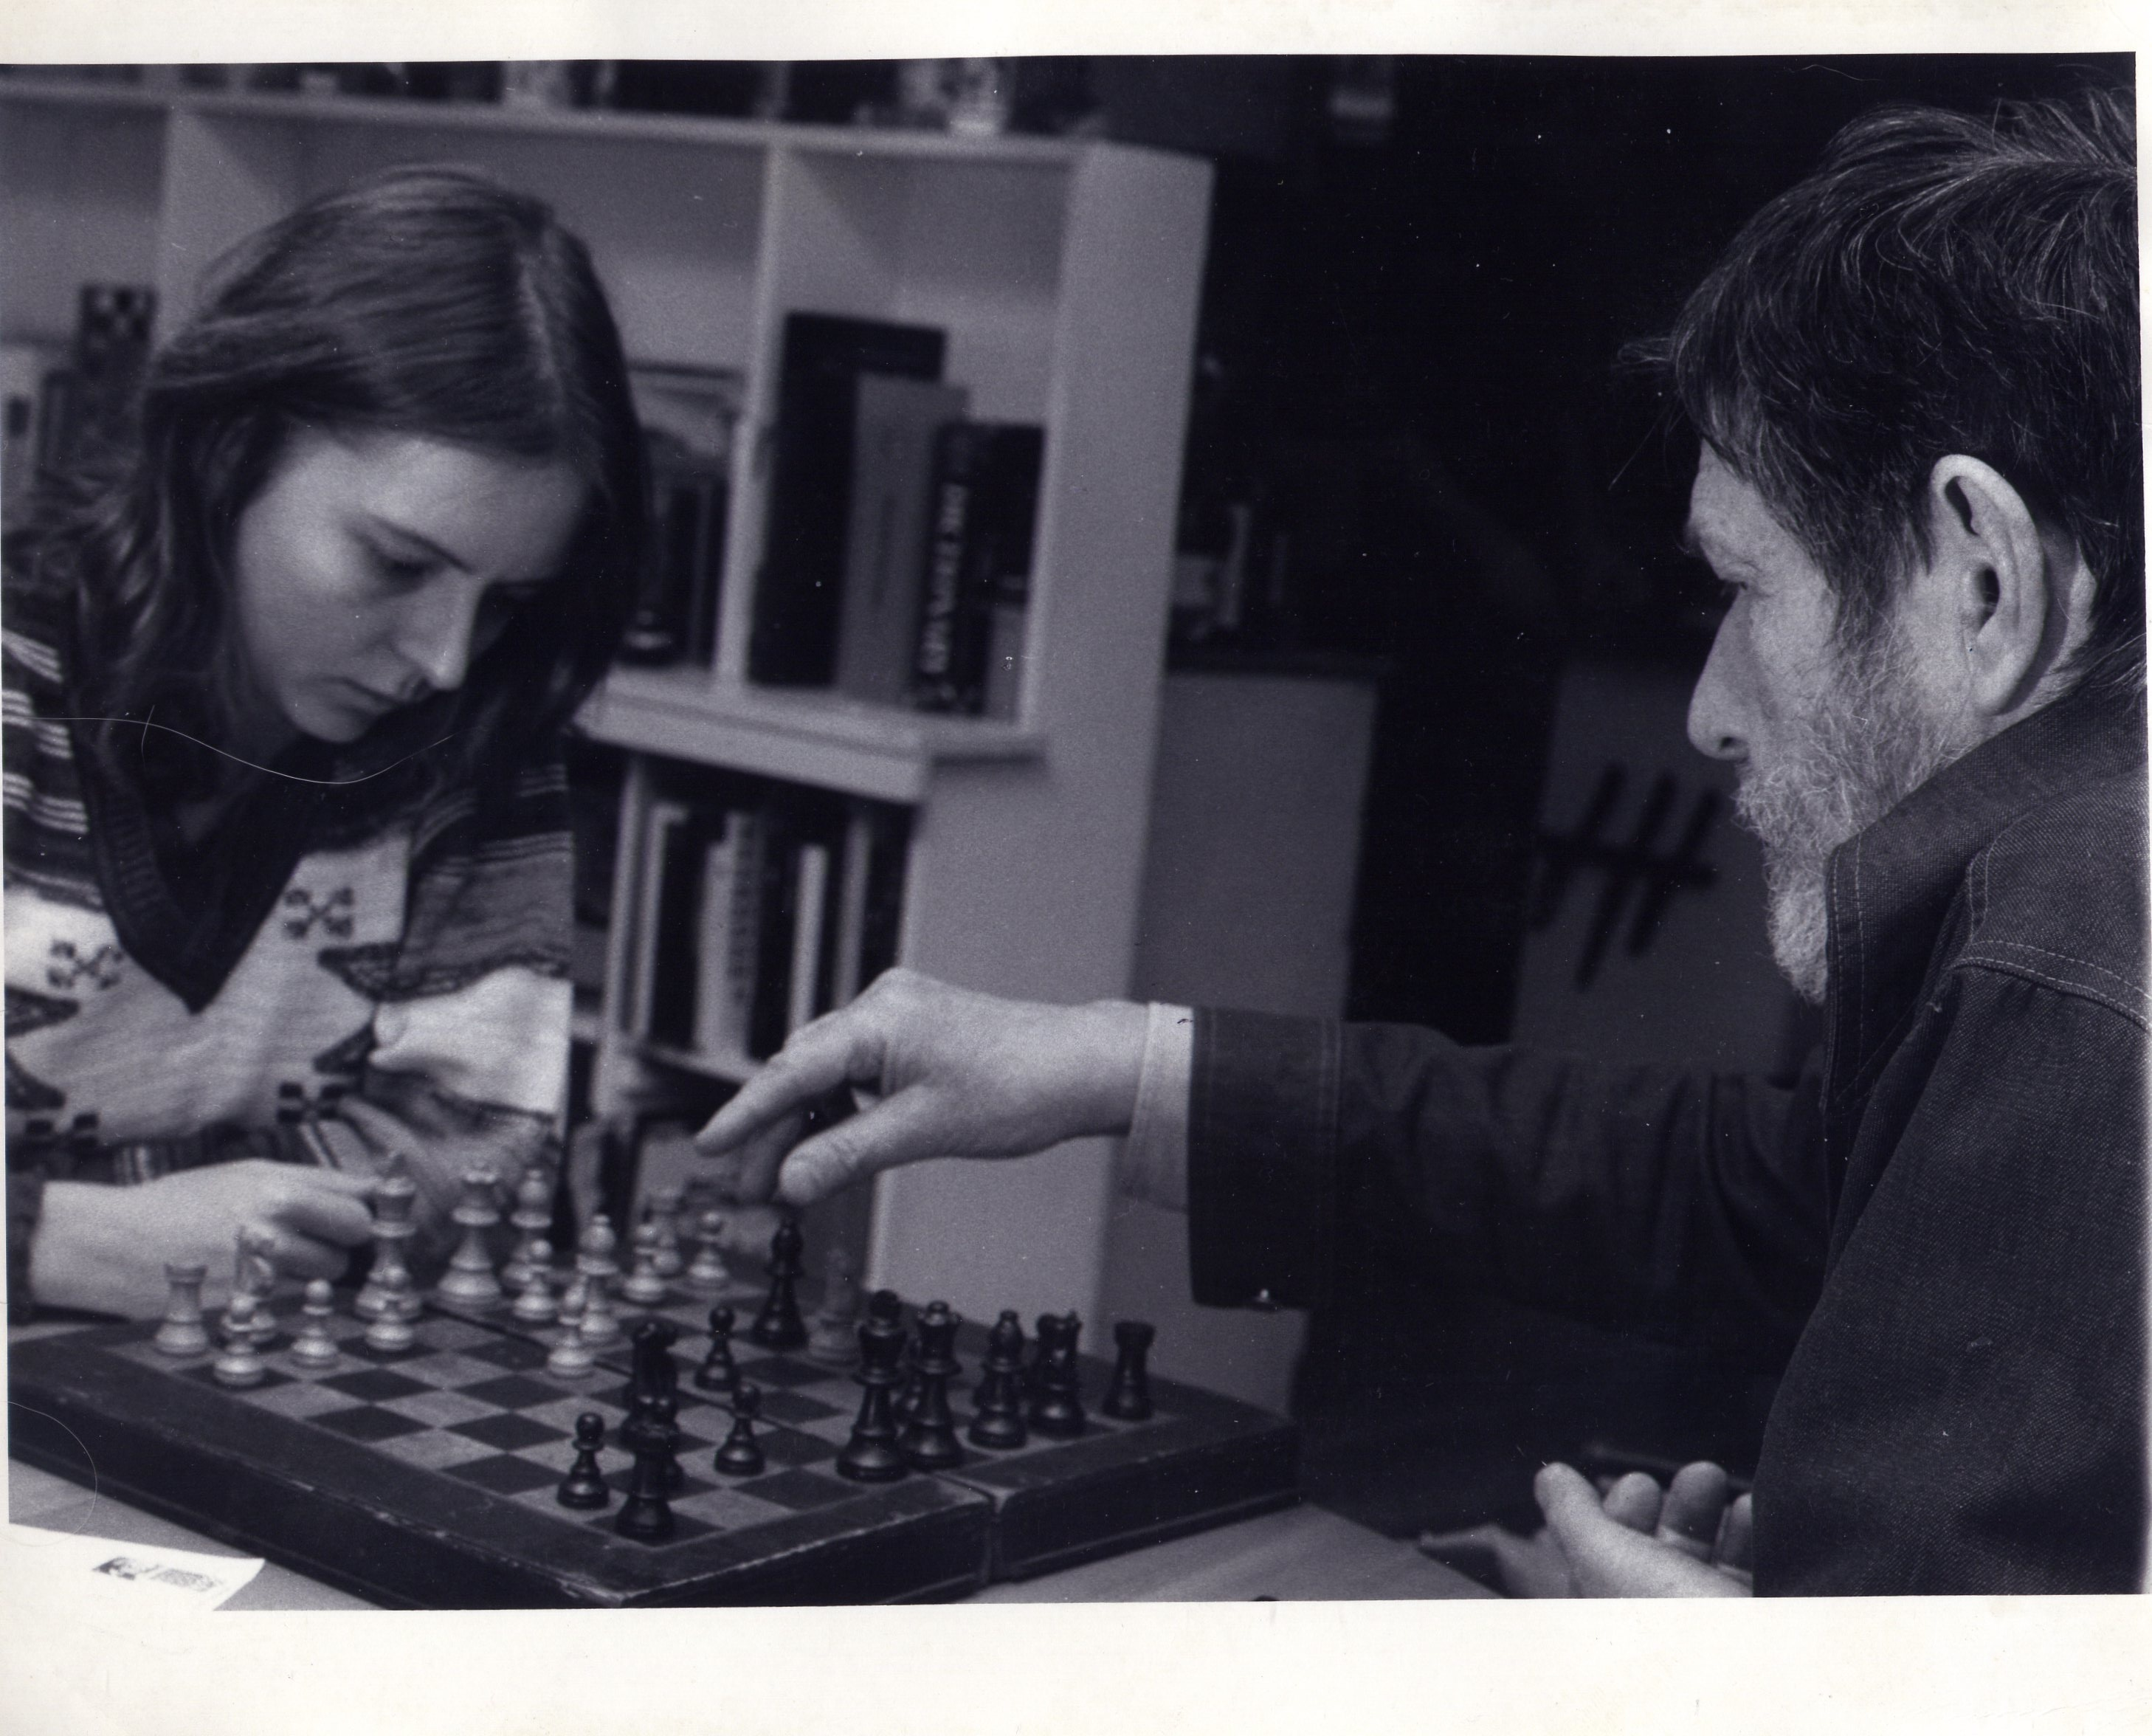 Joan La Barbara and John Cage playing chess before a rehearsal at his loft photo: © 1976 Michael McKenzie